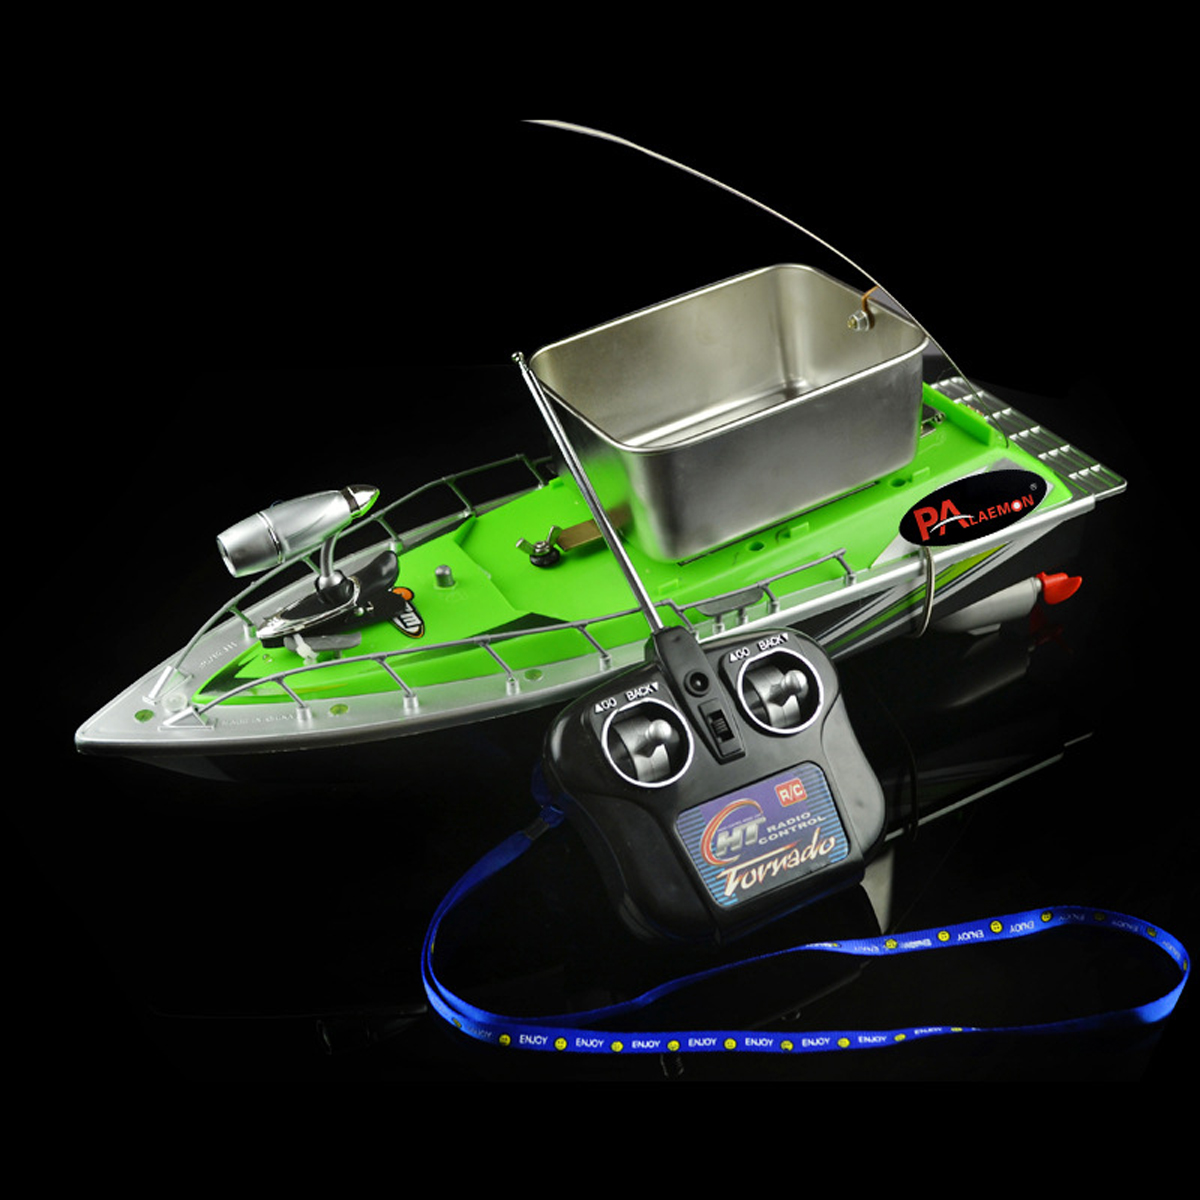 Speedboat Rc Bait Boat Carp Hull for Fishing Bait Mini Speed Boat Remote Control Boat Radio